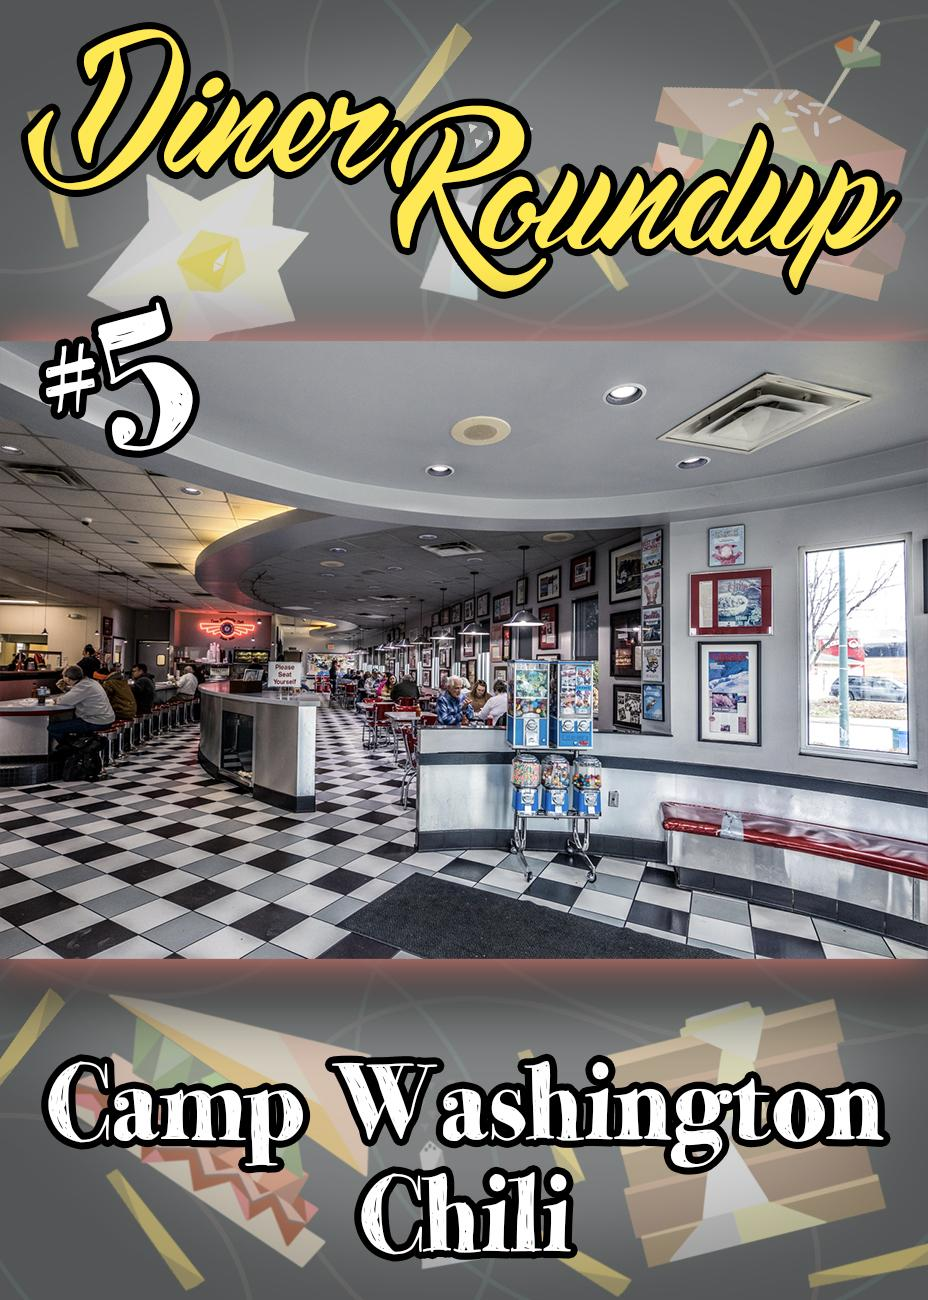 "Camp Washington Chili (3005 Colerain Avenue) is a famous local restaurant that's been open for business since 1940. It serves around 1000 coneys a day filled with Camp Washington's secret chili recipe made from locally sourced meat. Aside from coneys and ways, its large menu offers sandwiches, melts, soups, salads, and breakfast. It's open 24 hours a day Monday through Saturday, or ""24/6"" as they say. / Image: Catherine Viox // Published: 3.8.20"